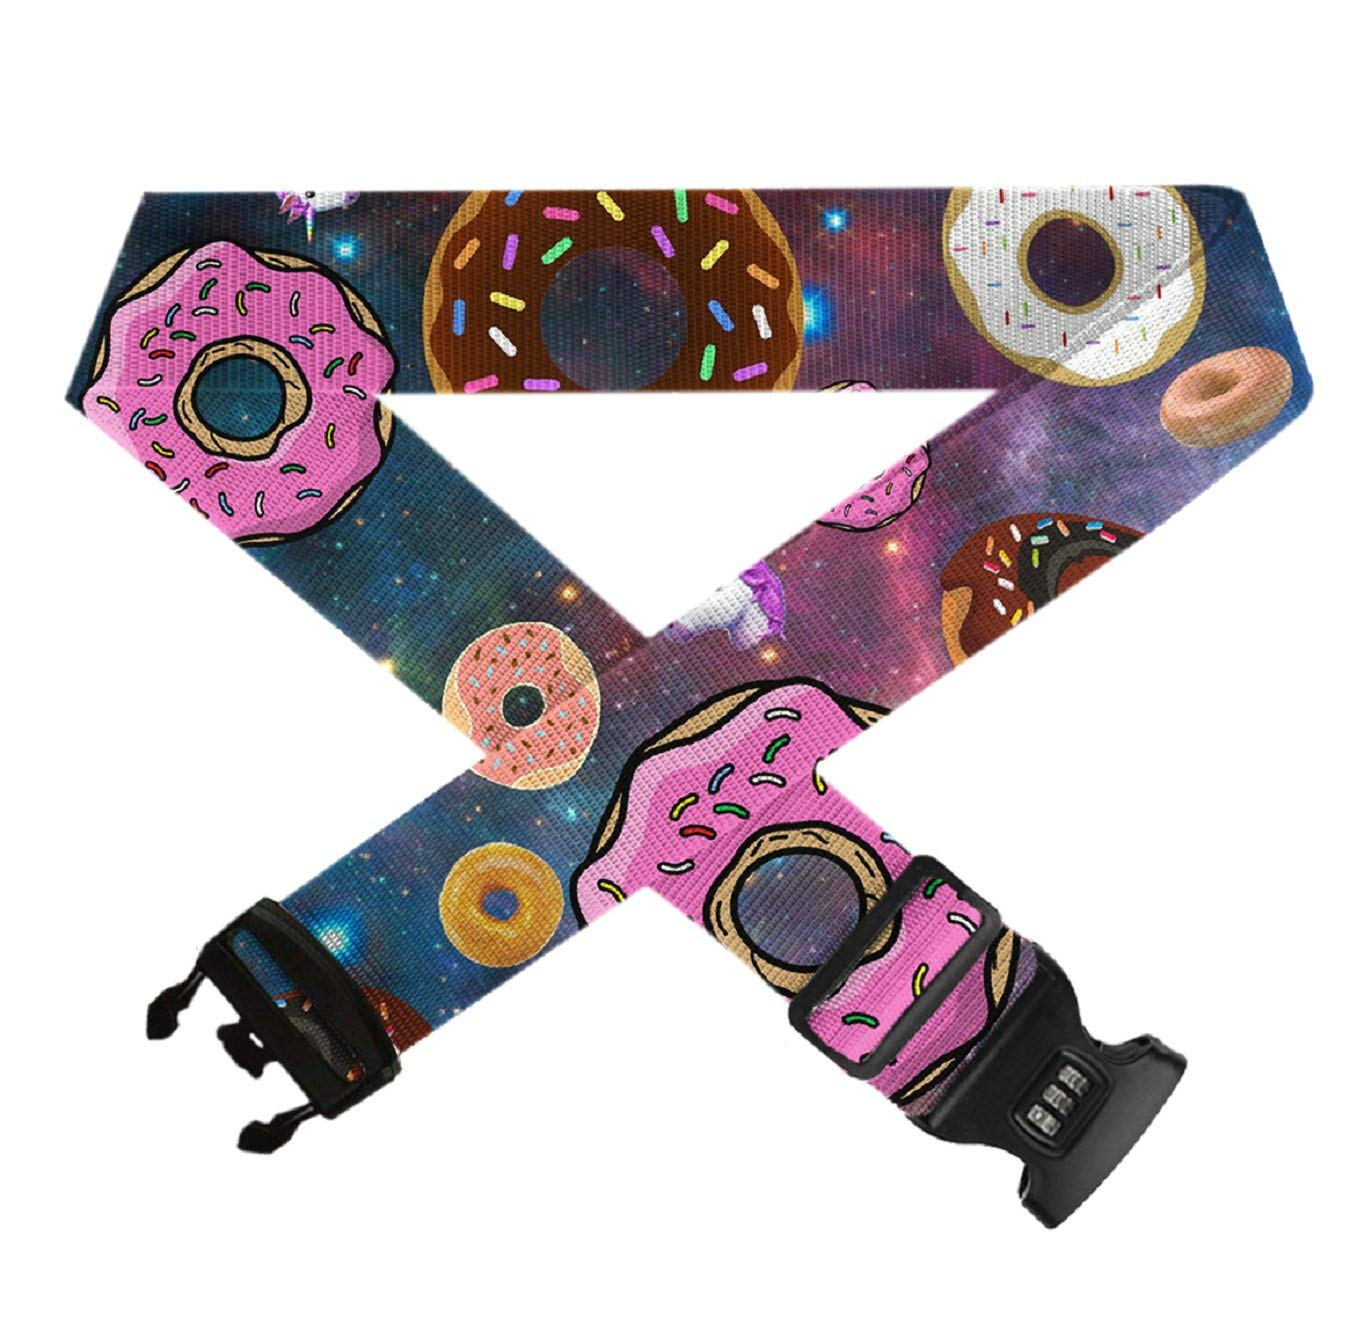 Straps Accessories for Travel//Trip Unicorn and Donut GLORY ART 1 PC Add a Bag Luggage Strap Adjustable Suitcase Belt with TSA Approved